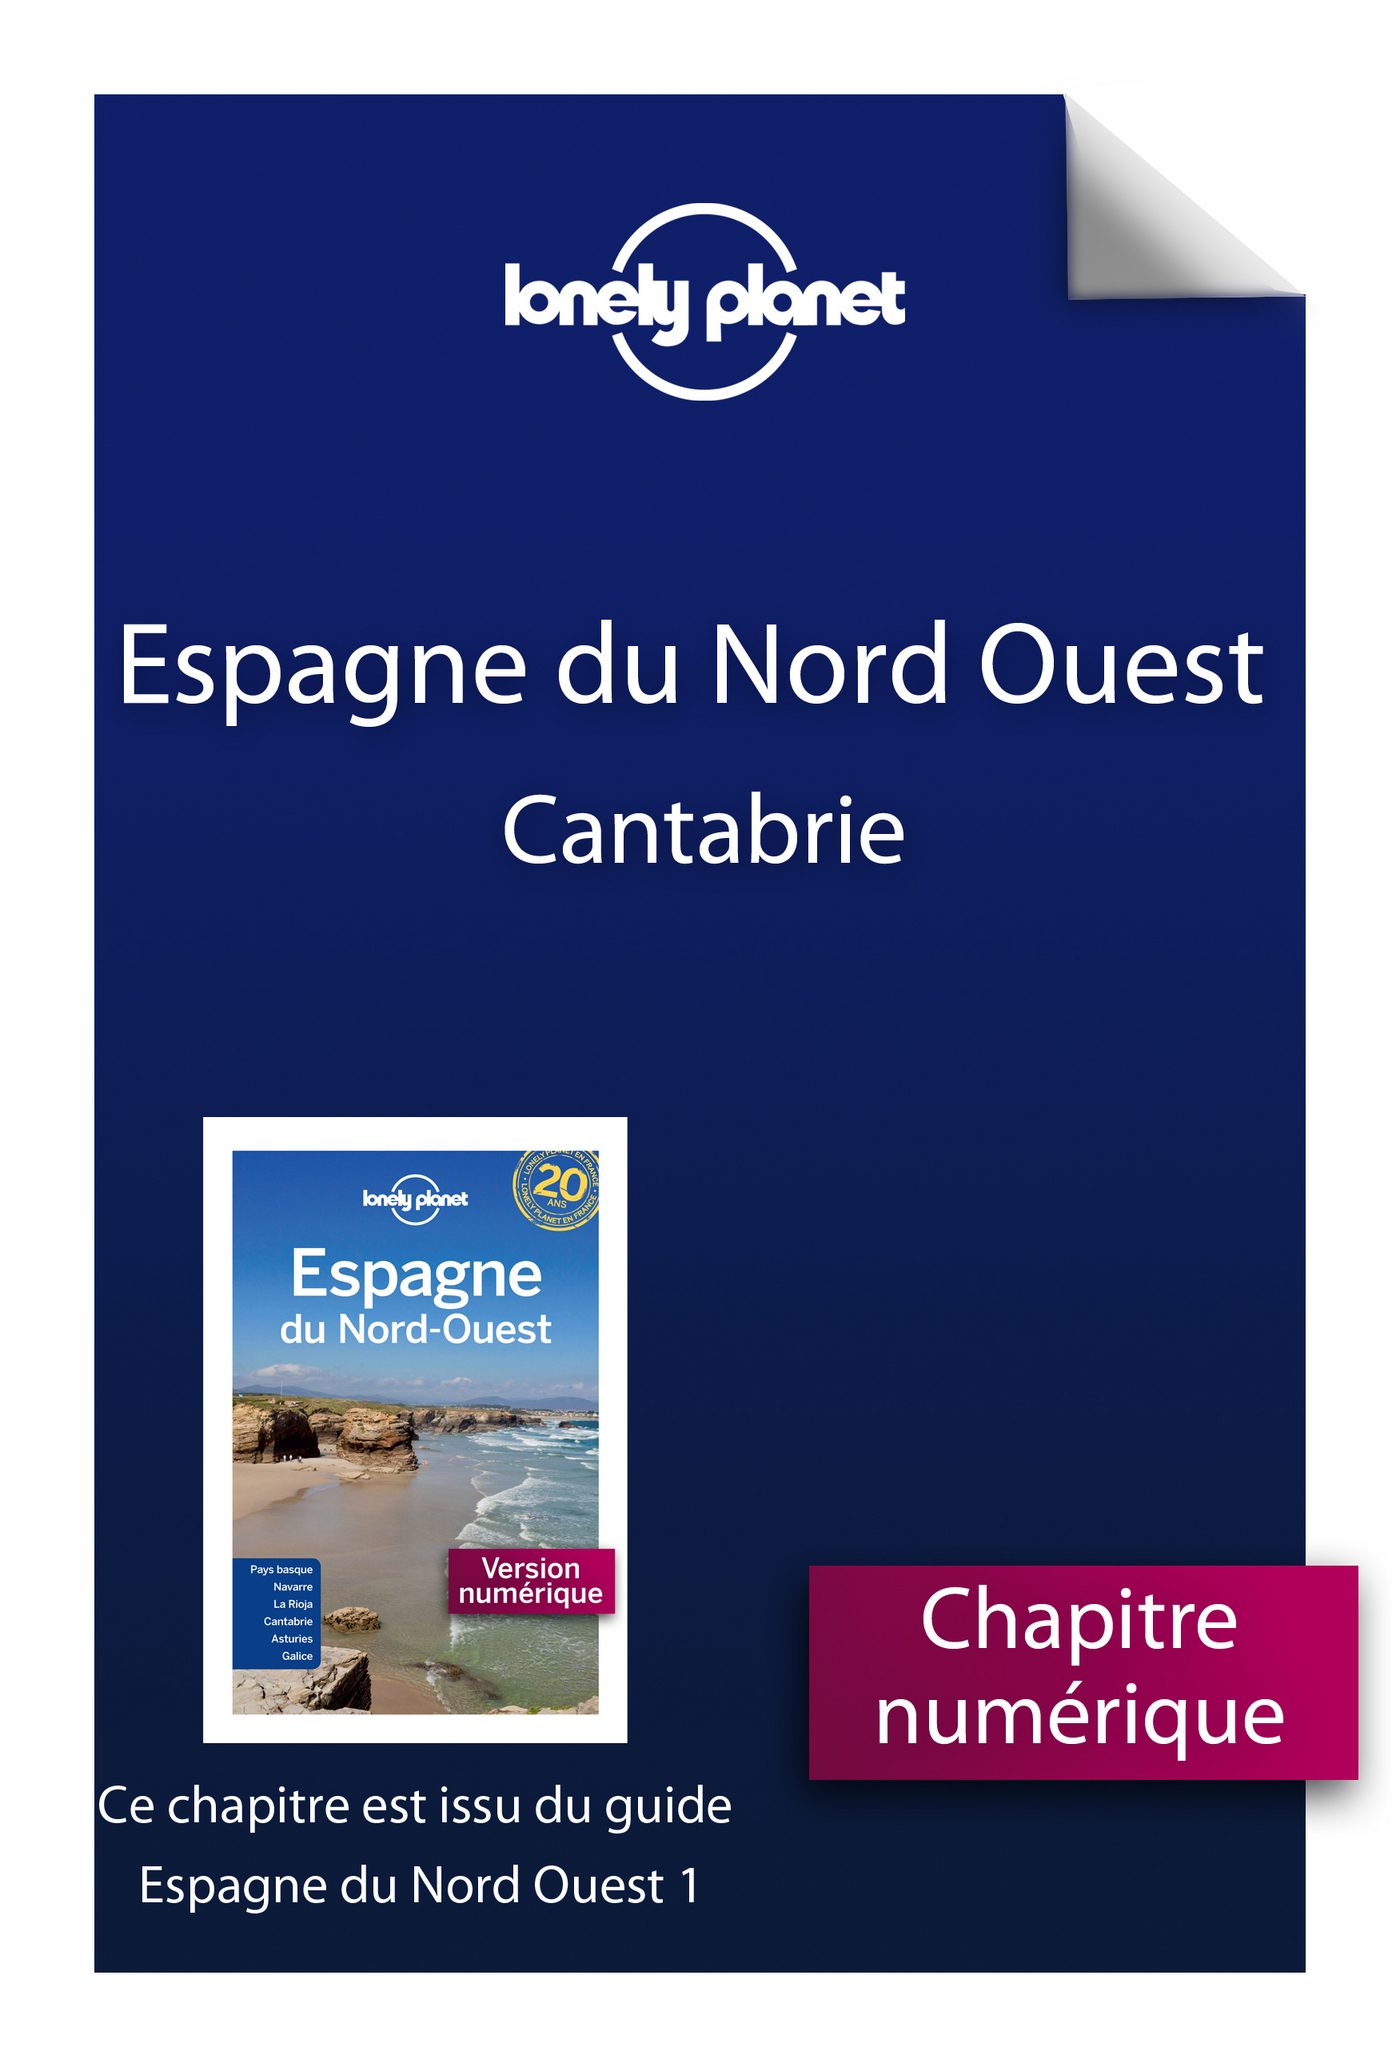 Espagne du Nord Ouest 1ed - Cantabrie